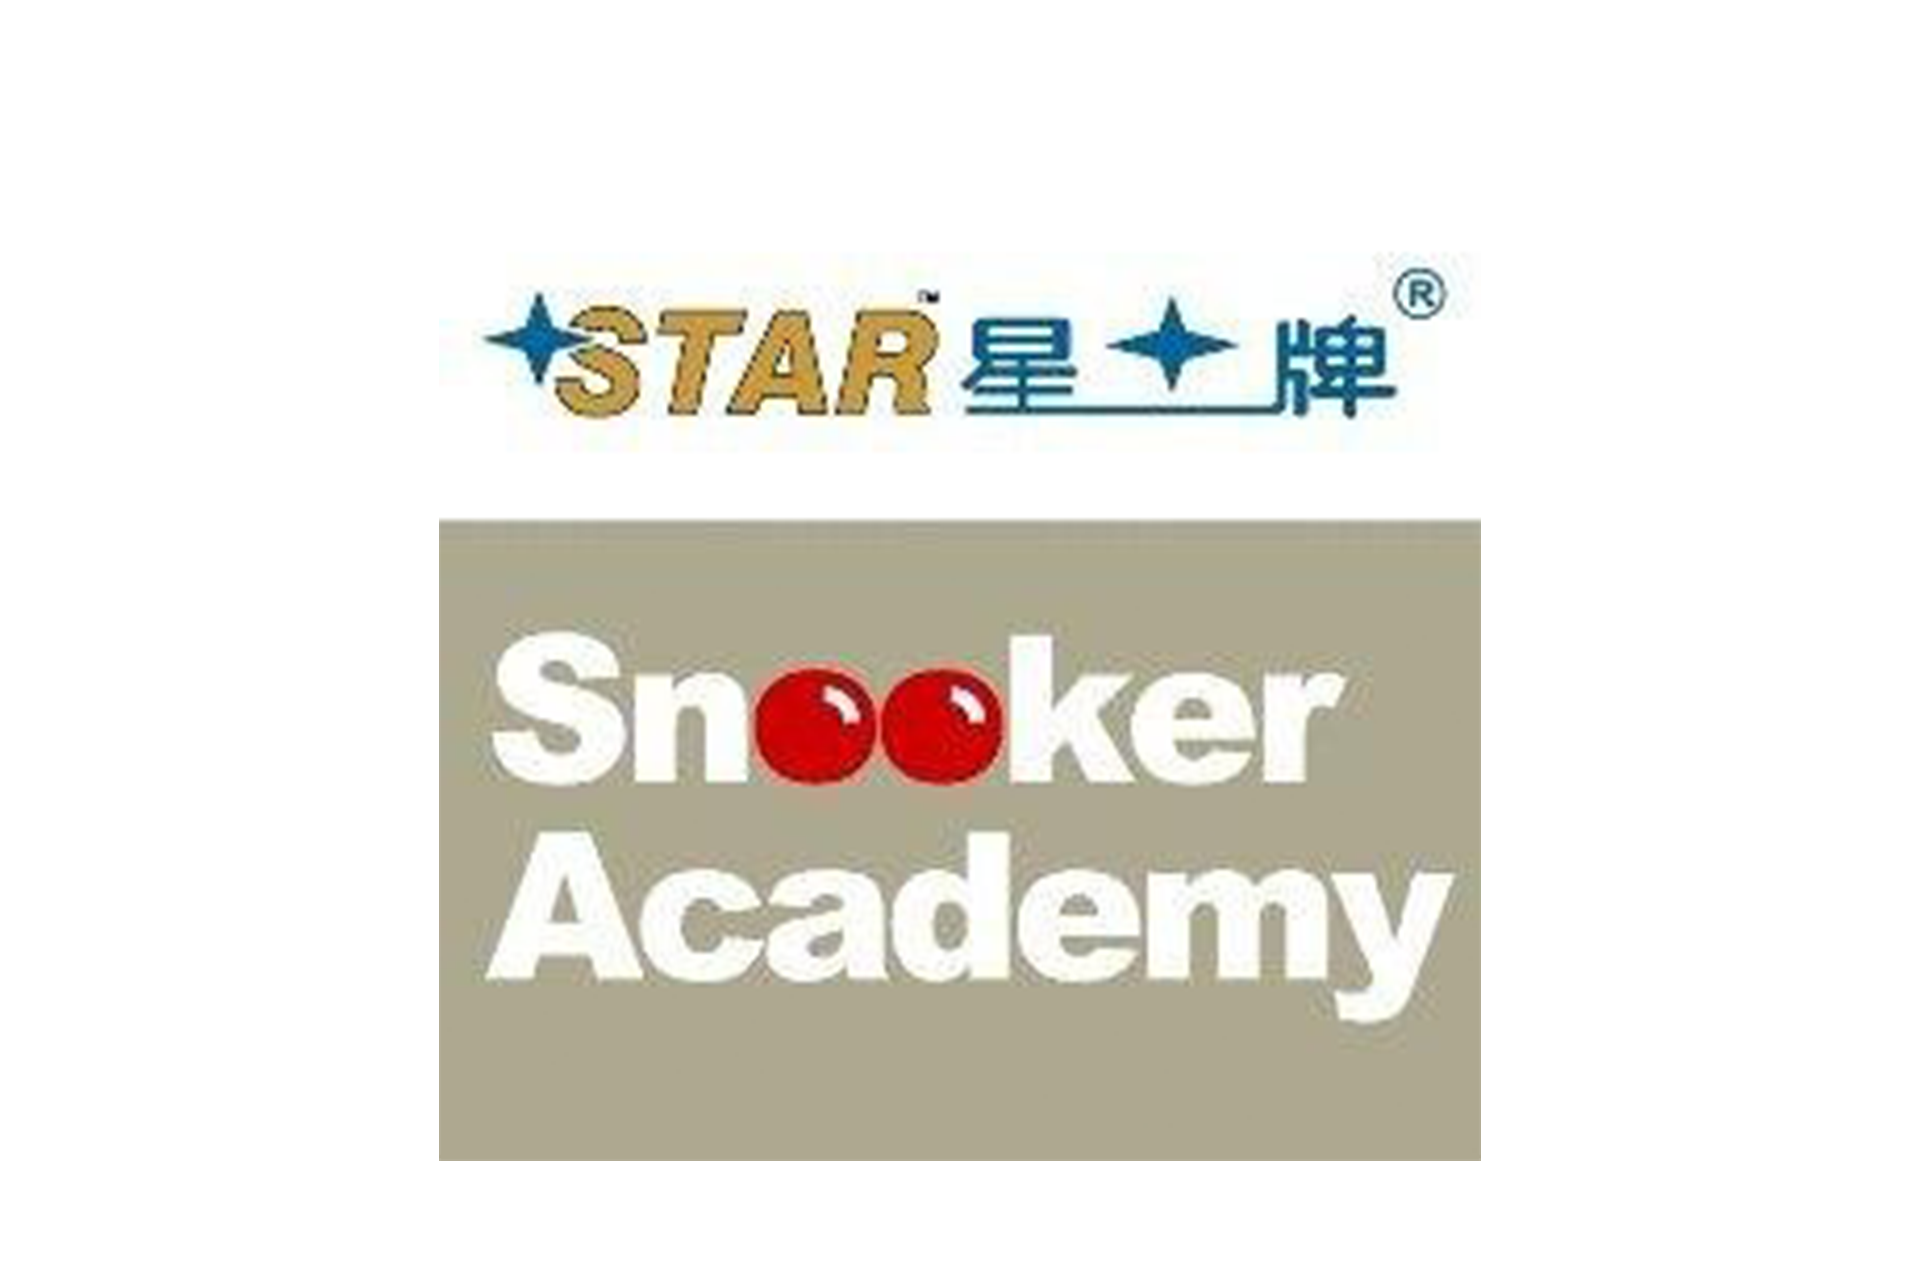 Star Snooker Academy